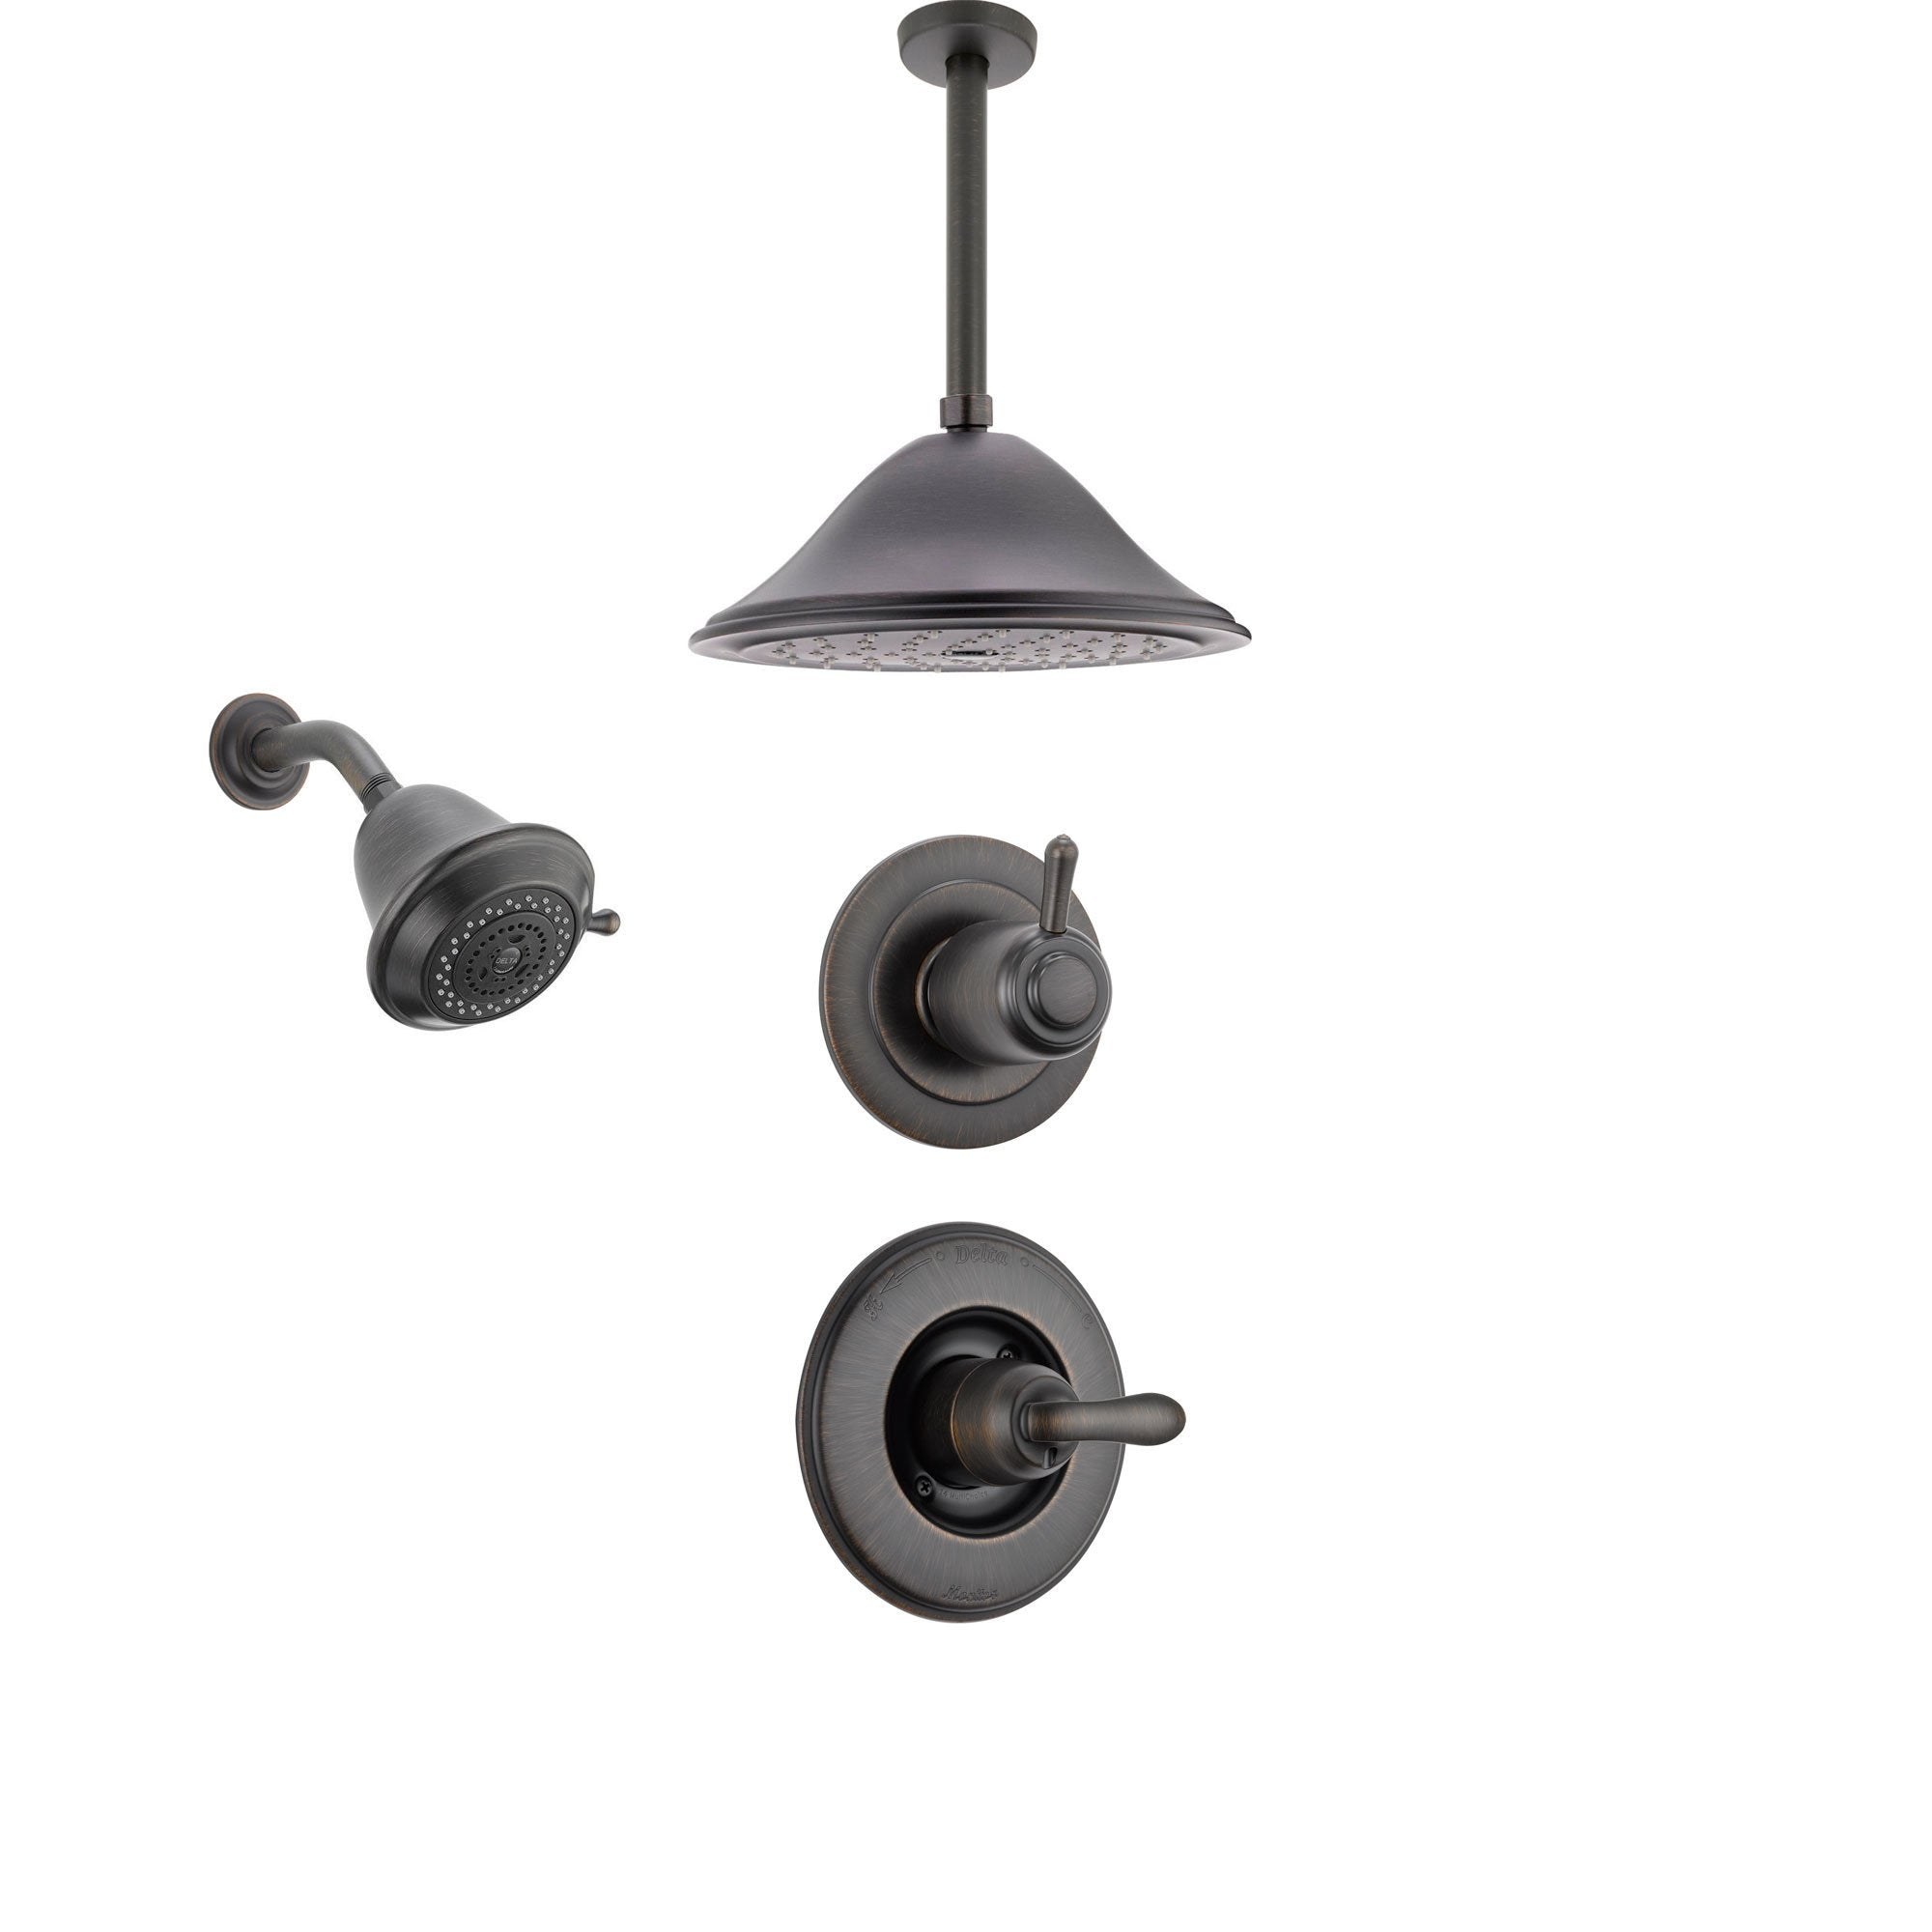 Delta Linden Venetian Bronze Shower System with Normal Shower Handle, 3-setting Diverter, Large Ceiling Mount Rain Showerhead, and Smaller Wall Mount Shower Head SS149485RB